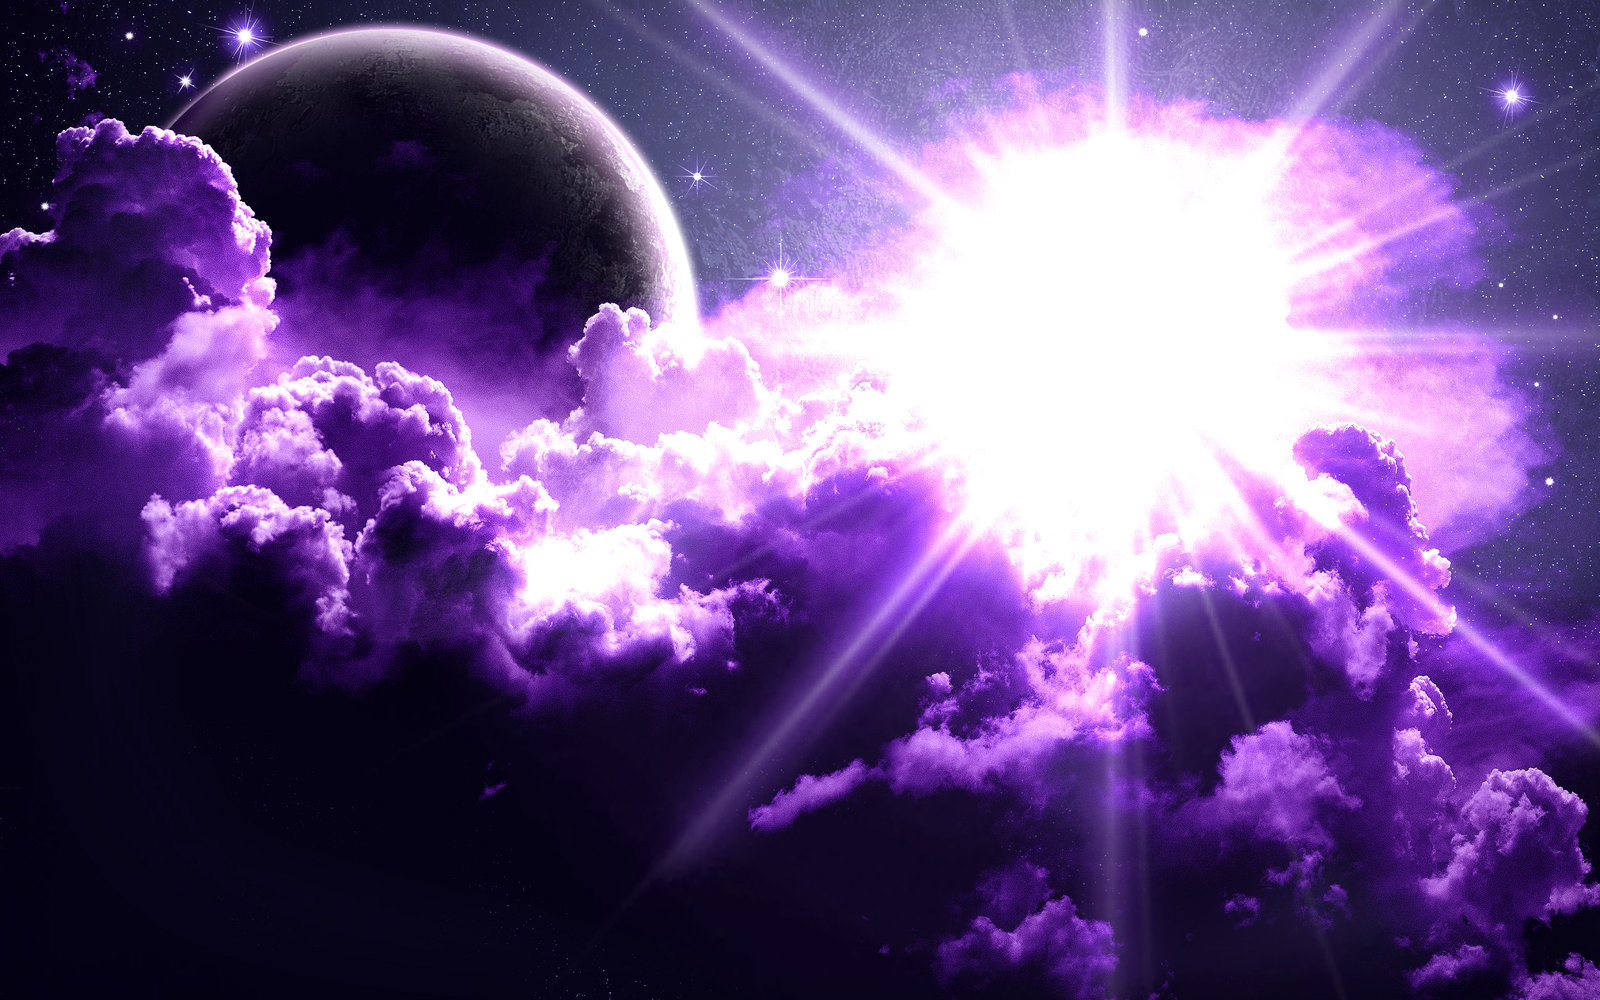 Hd Background Wallpaper 800x600: HD Purple Space Wallpaper